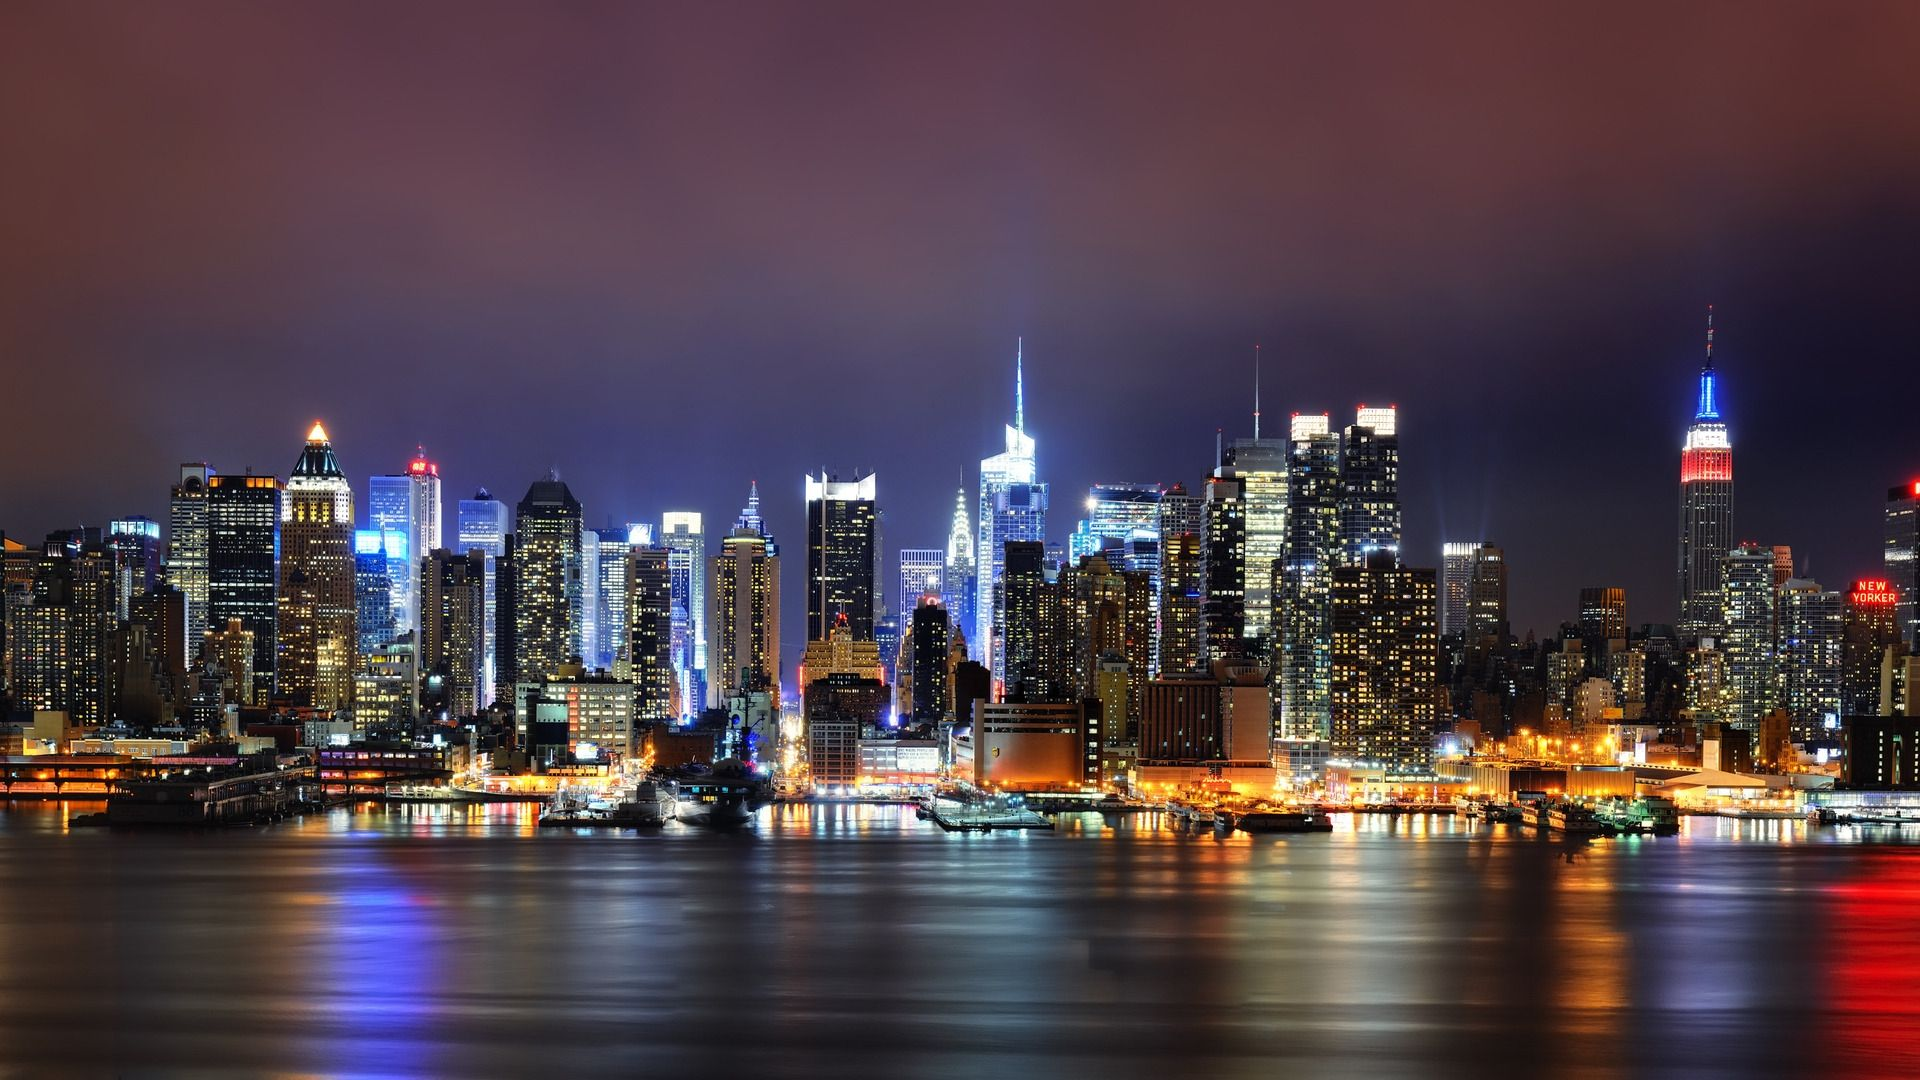 New York HD Wallpapers - Top Free New York HD Backgrounds ...